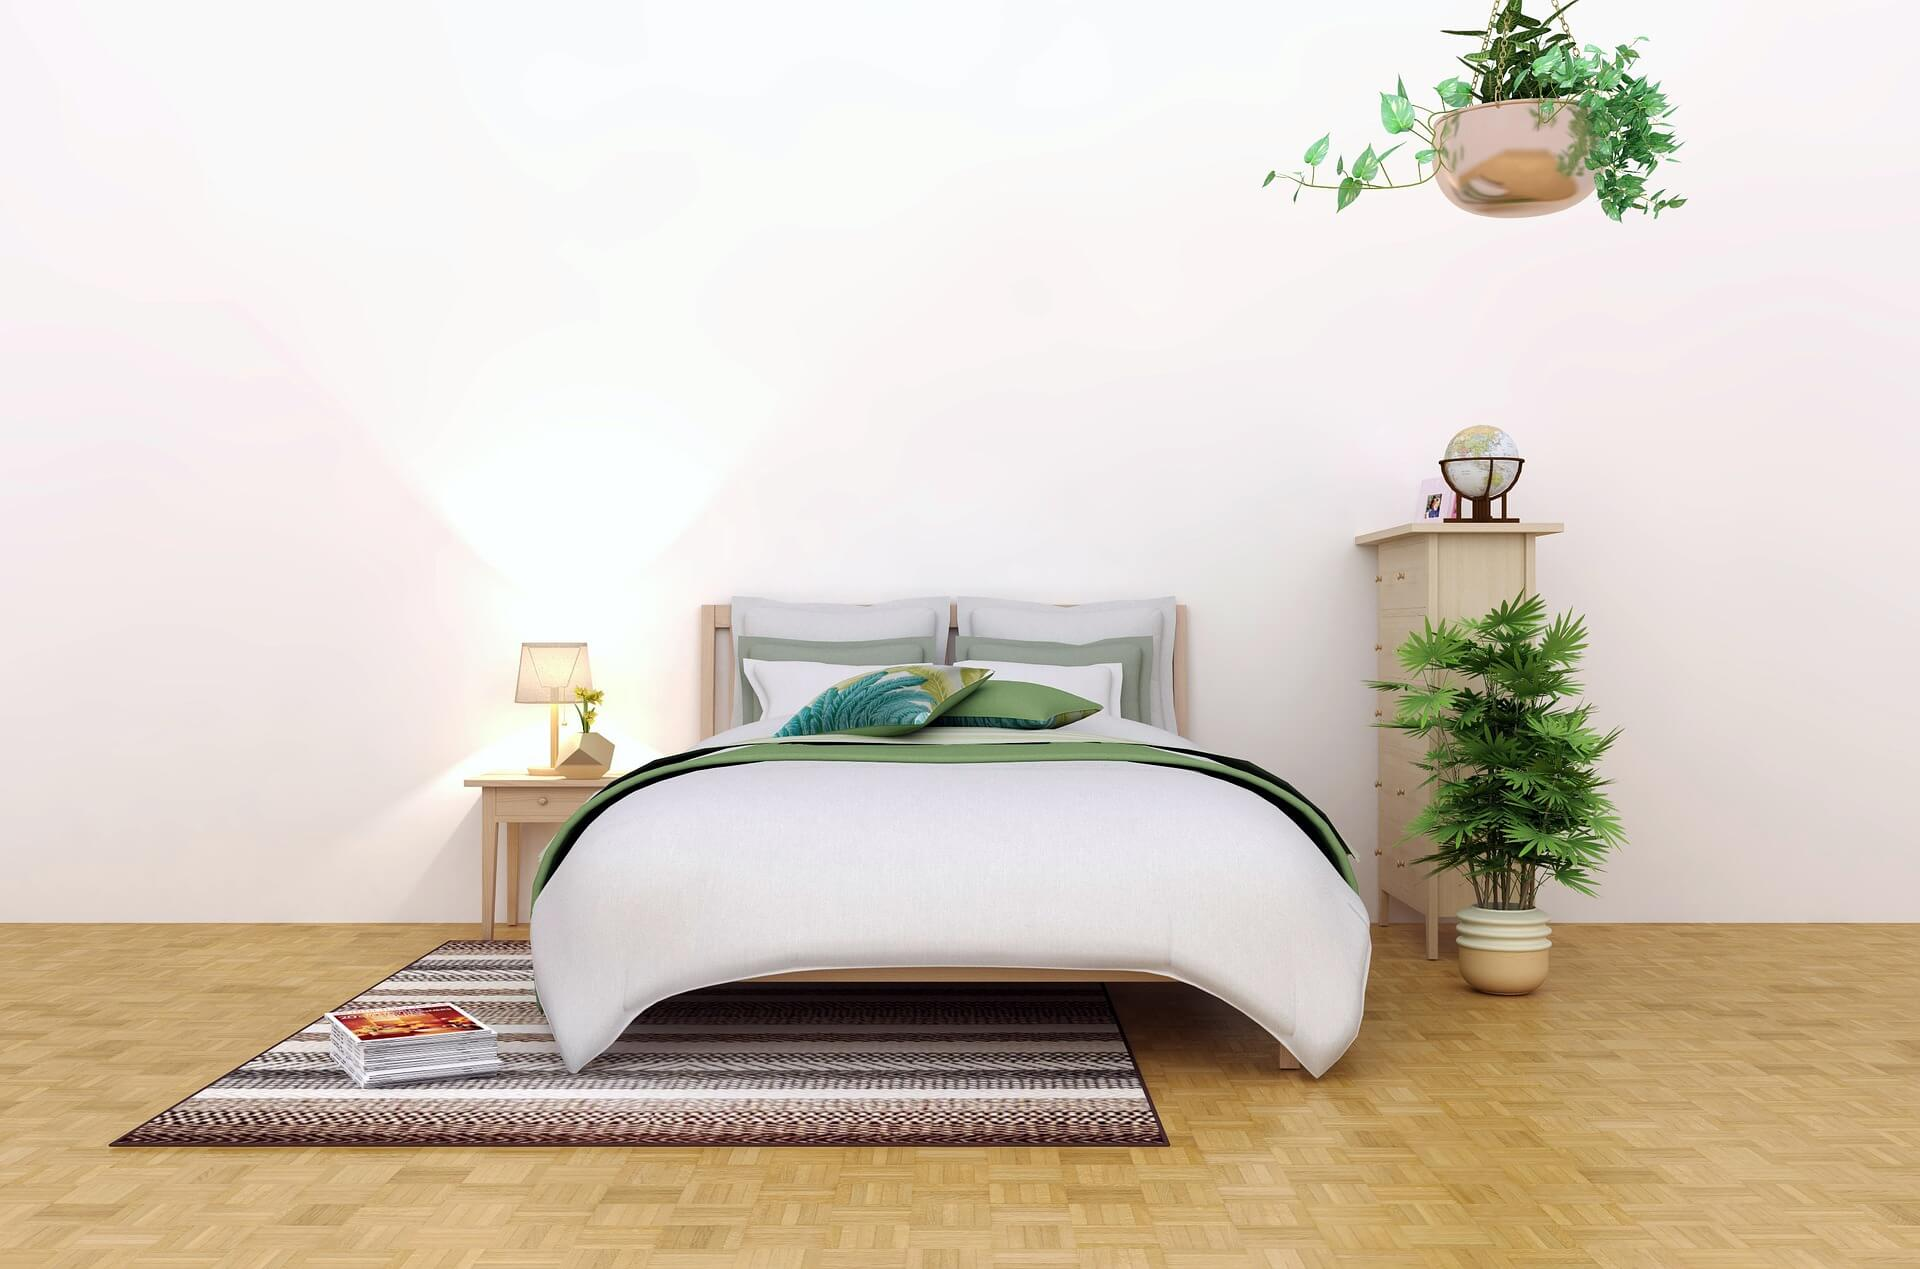 The Emperia Mattress is Wink & Nod and India's                             most luxurious mattress, with an innovative cool-gel                             infused outer cover.